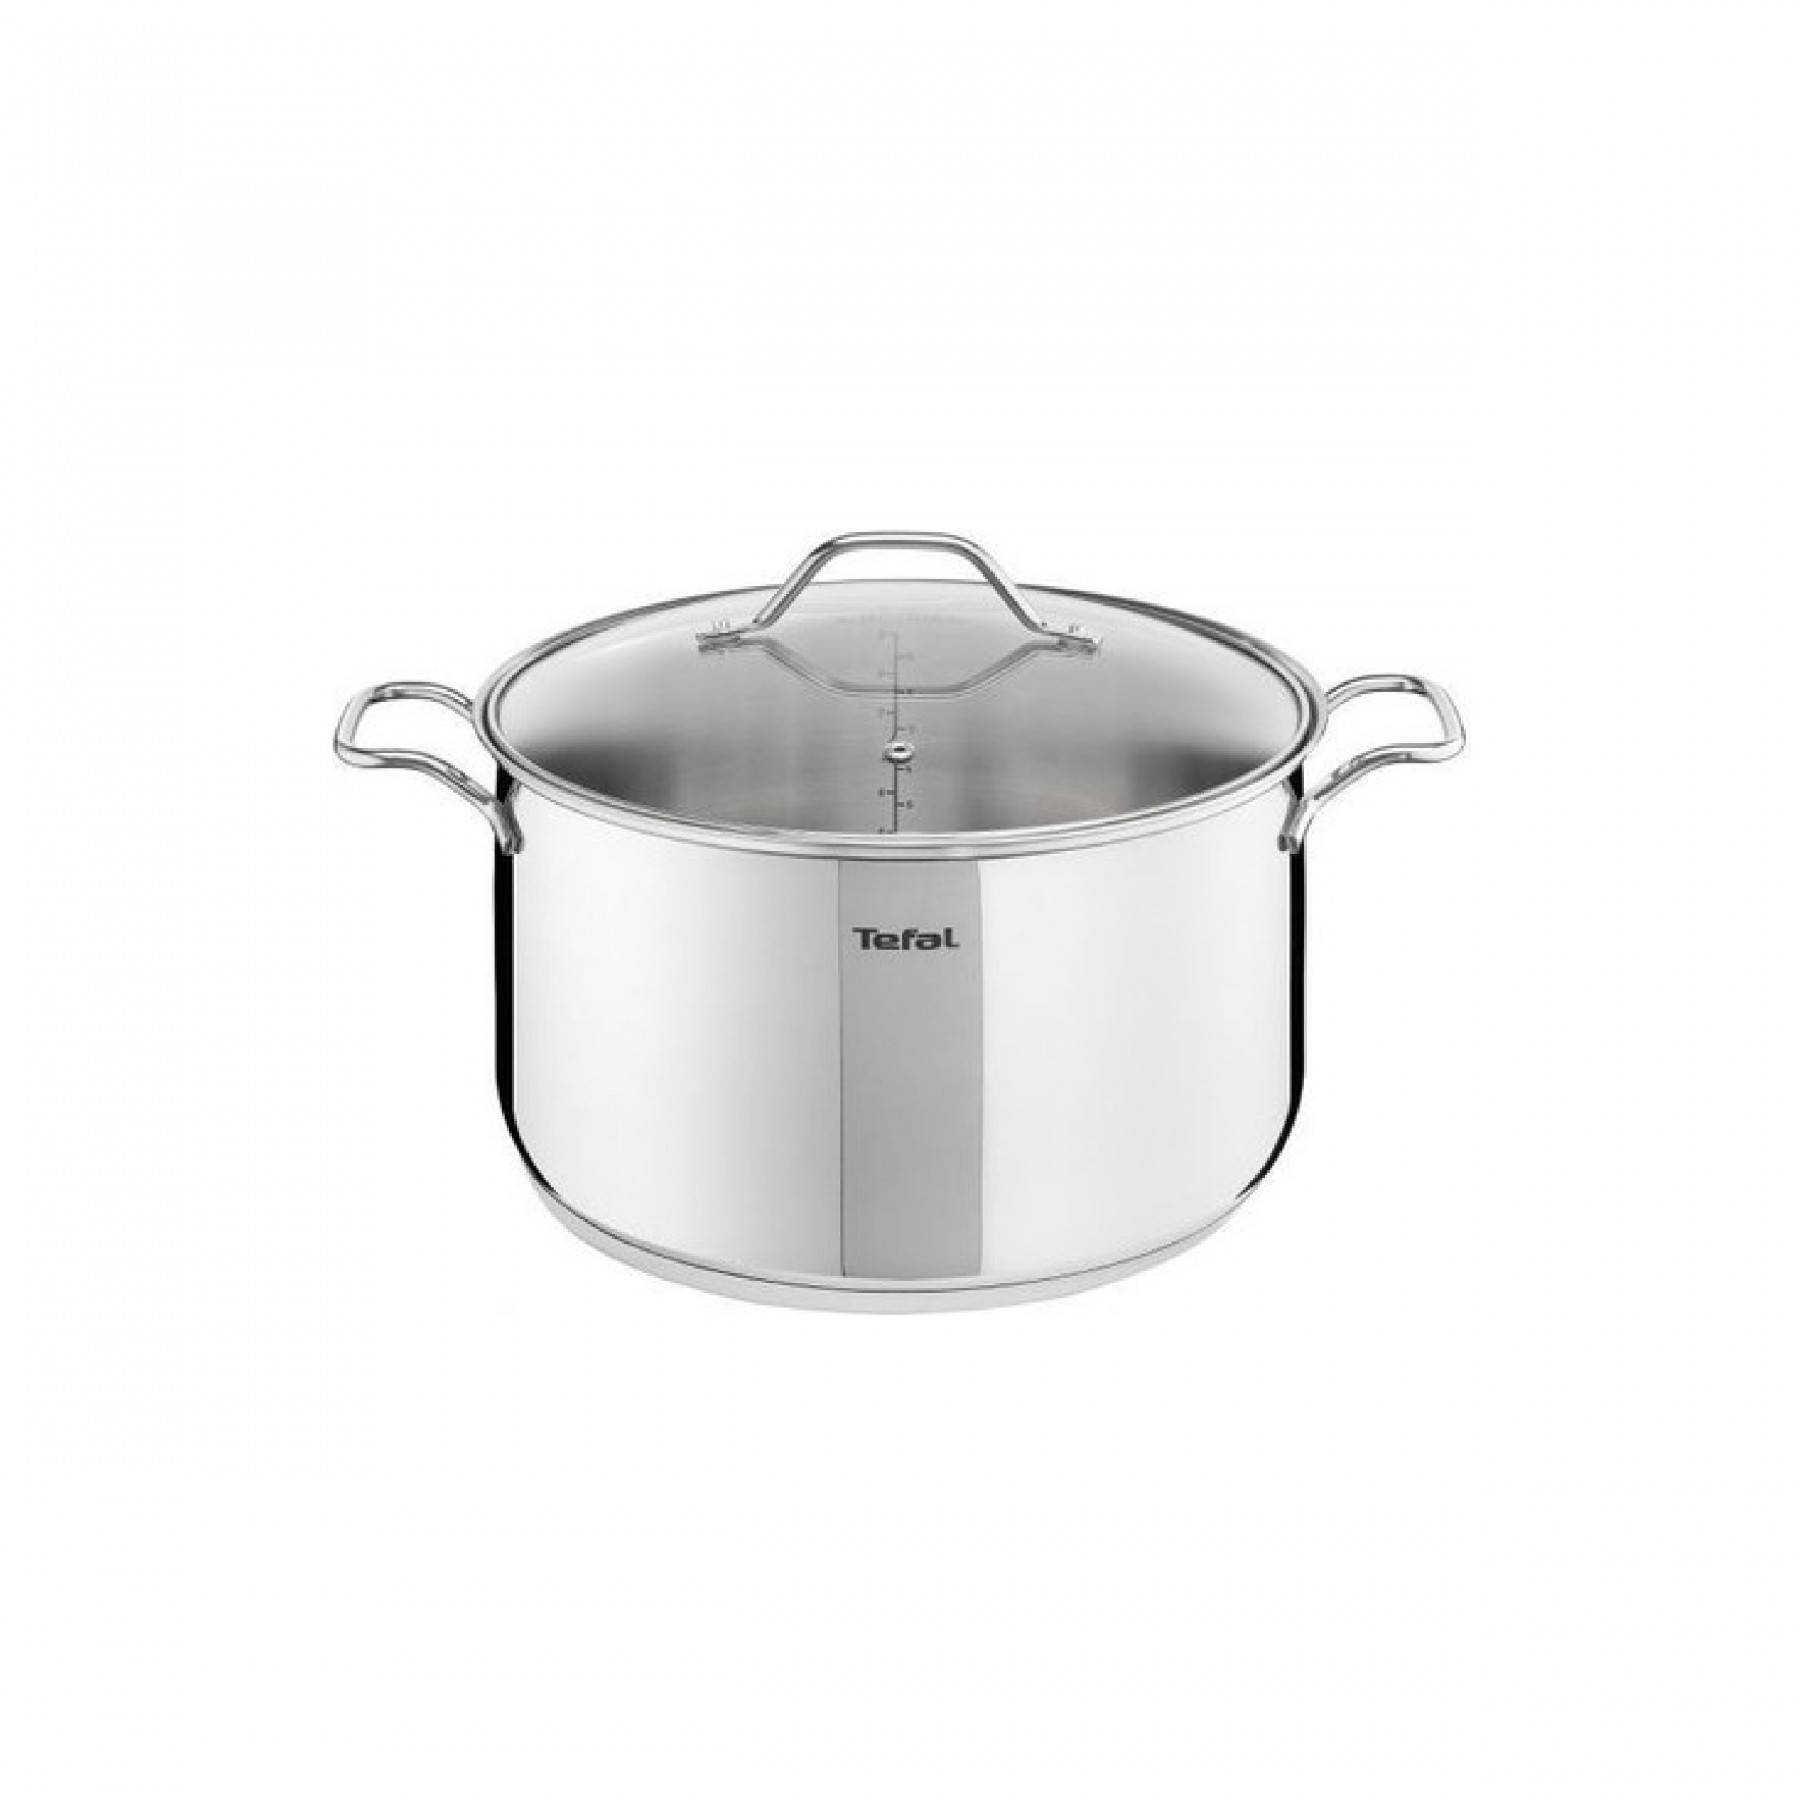 Tefal Intuition XL Large Stainless Steel Stock Pot 26 cm with Lid B9086314